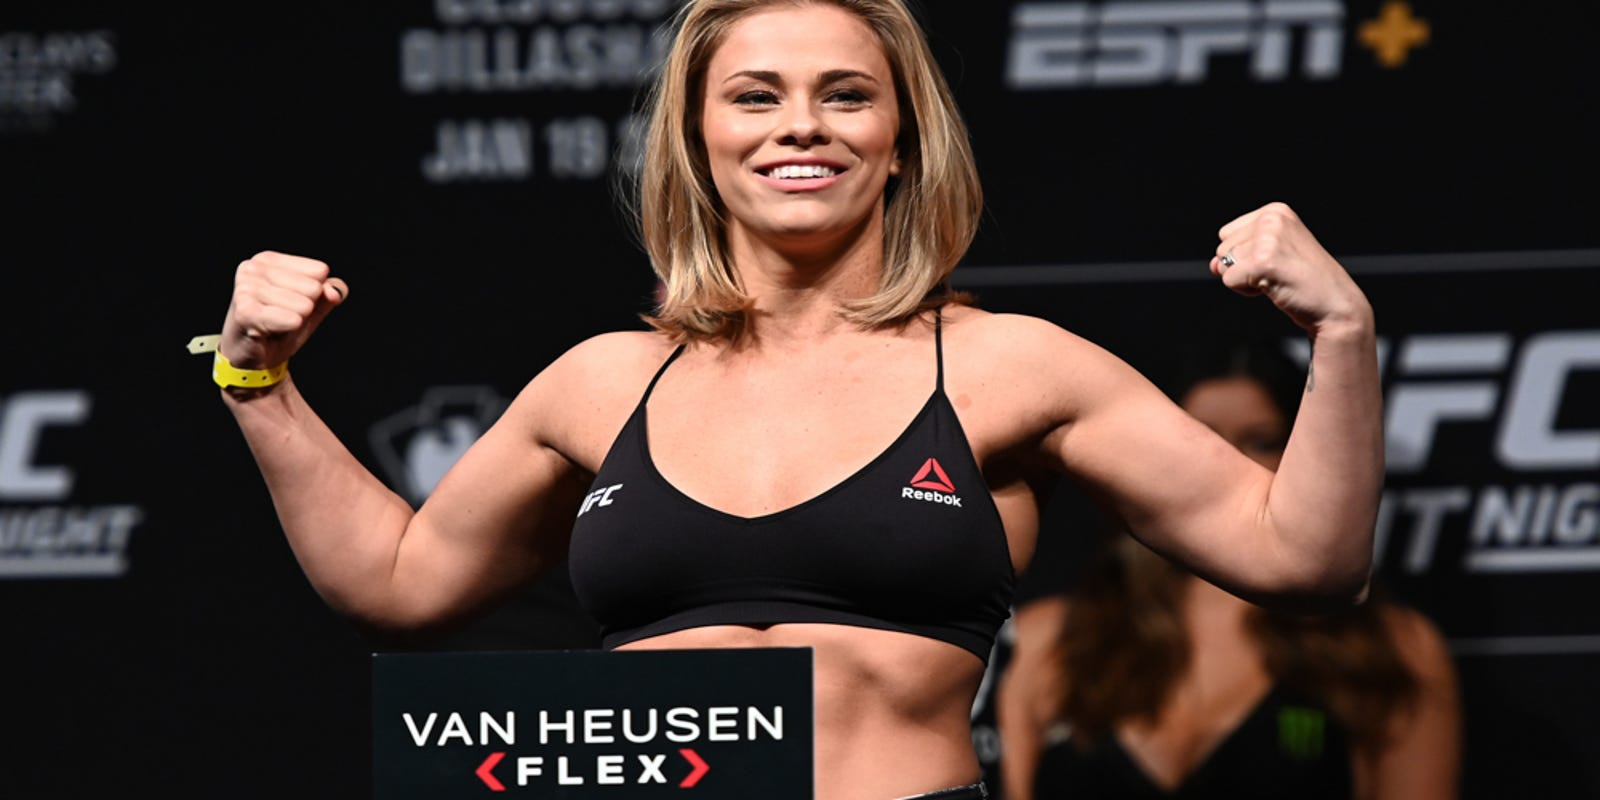 Allie Ayers Nude sports illustrated swimsuit issue: ufc's paige vanzant to be